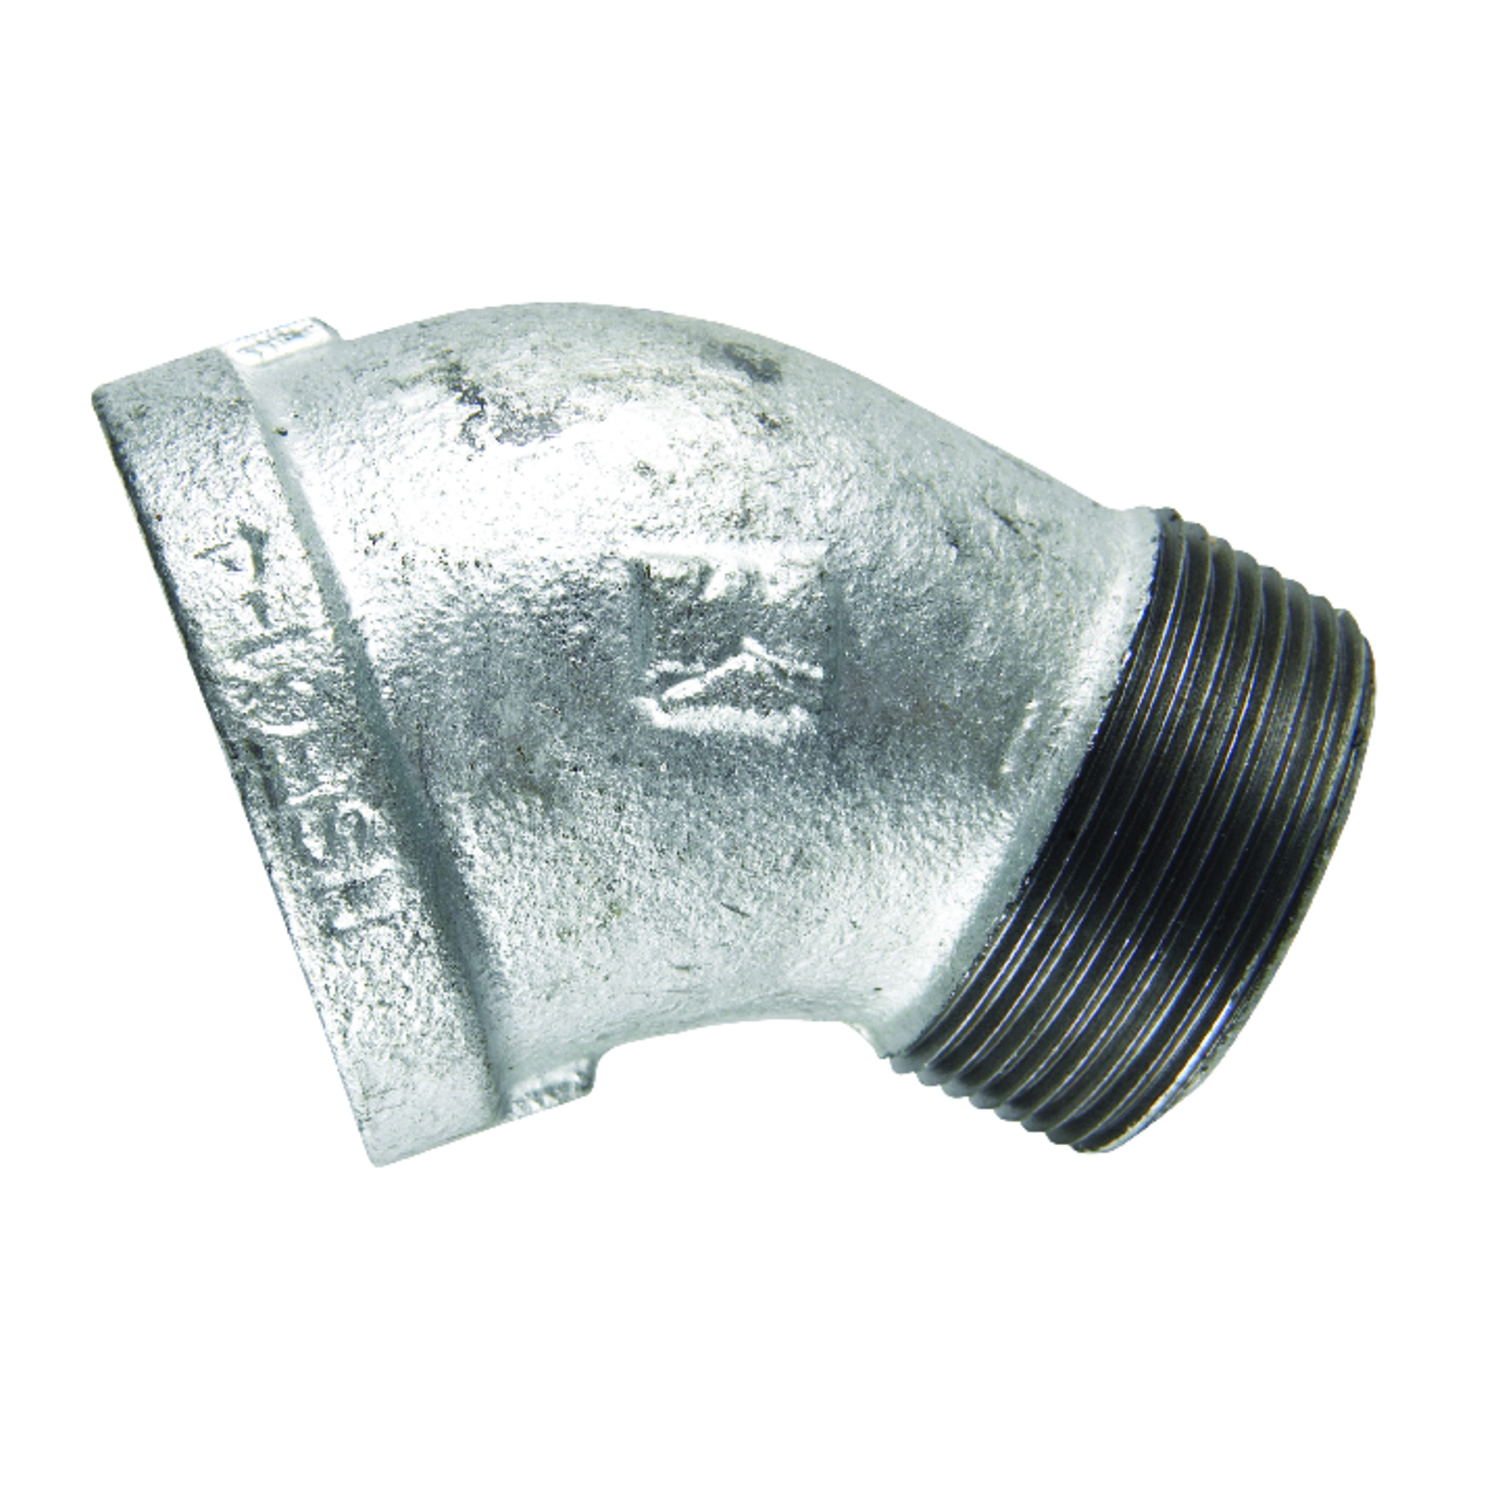 B & K  1 in. FPT   x 1 in. Dia. MPT  Galvanized  Malleable Iron  Street Elbow